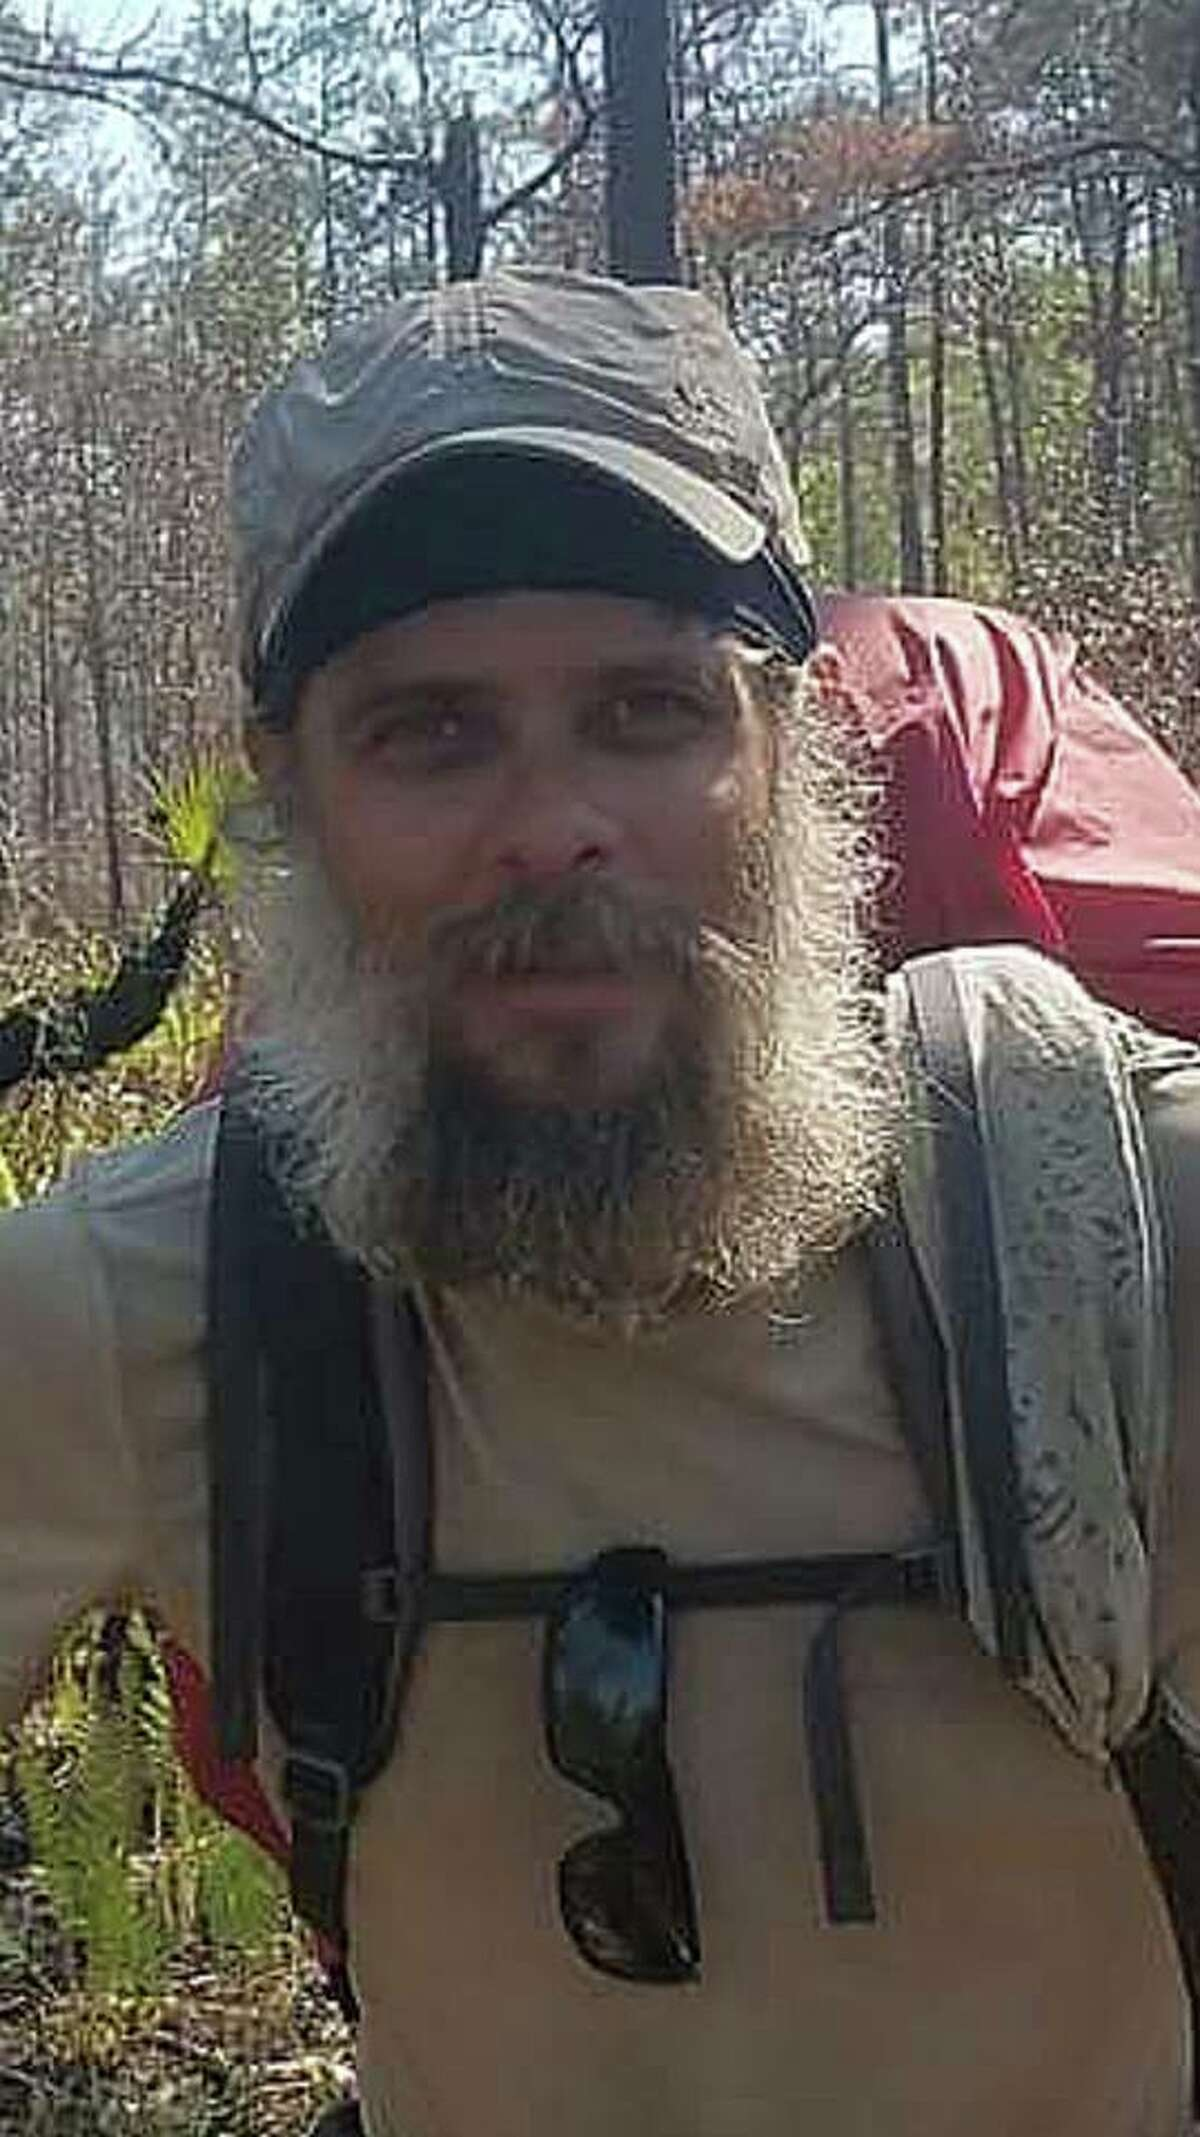 Glens Falls police say the hiker found dead last summer in Collier County, Fla., could have ties to the Lake George area. Police in New York and Florida are hoping police can help identify the man.